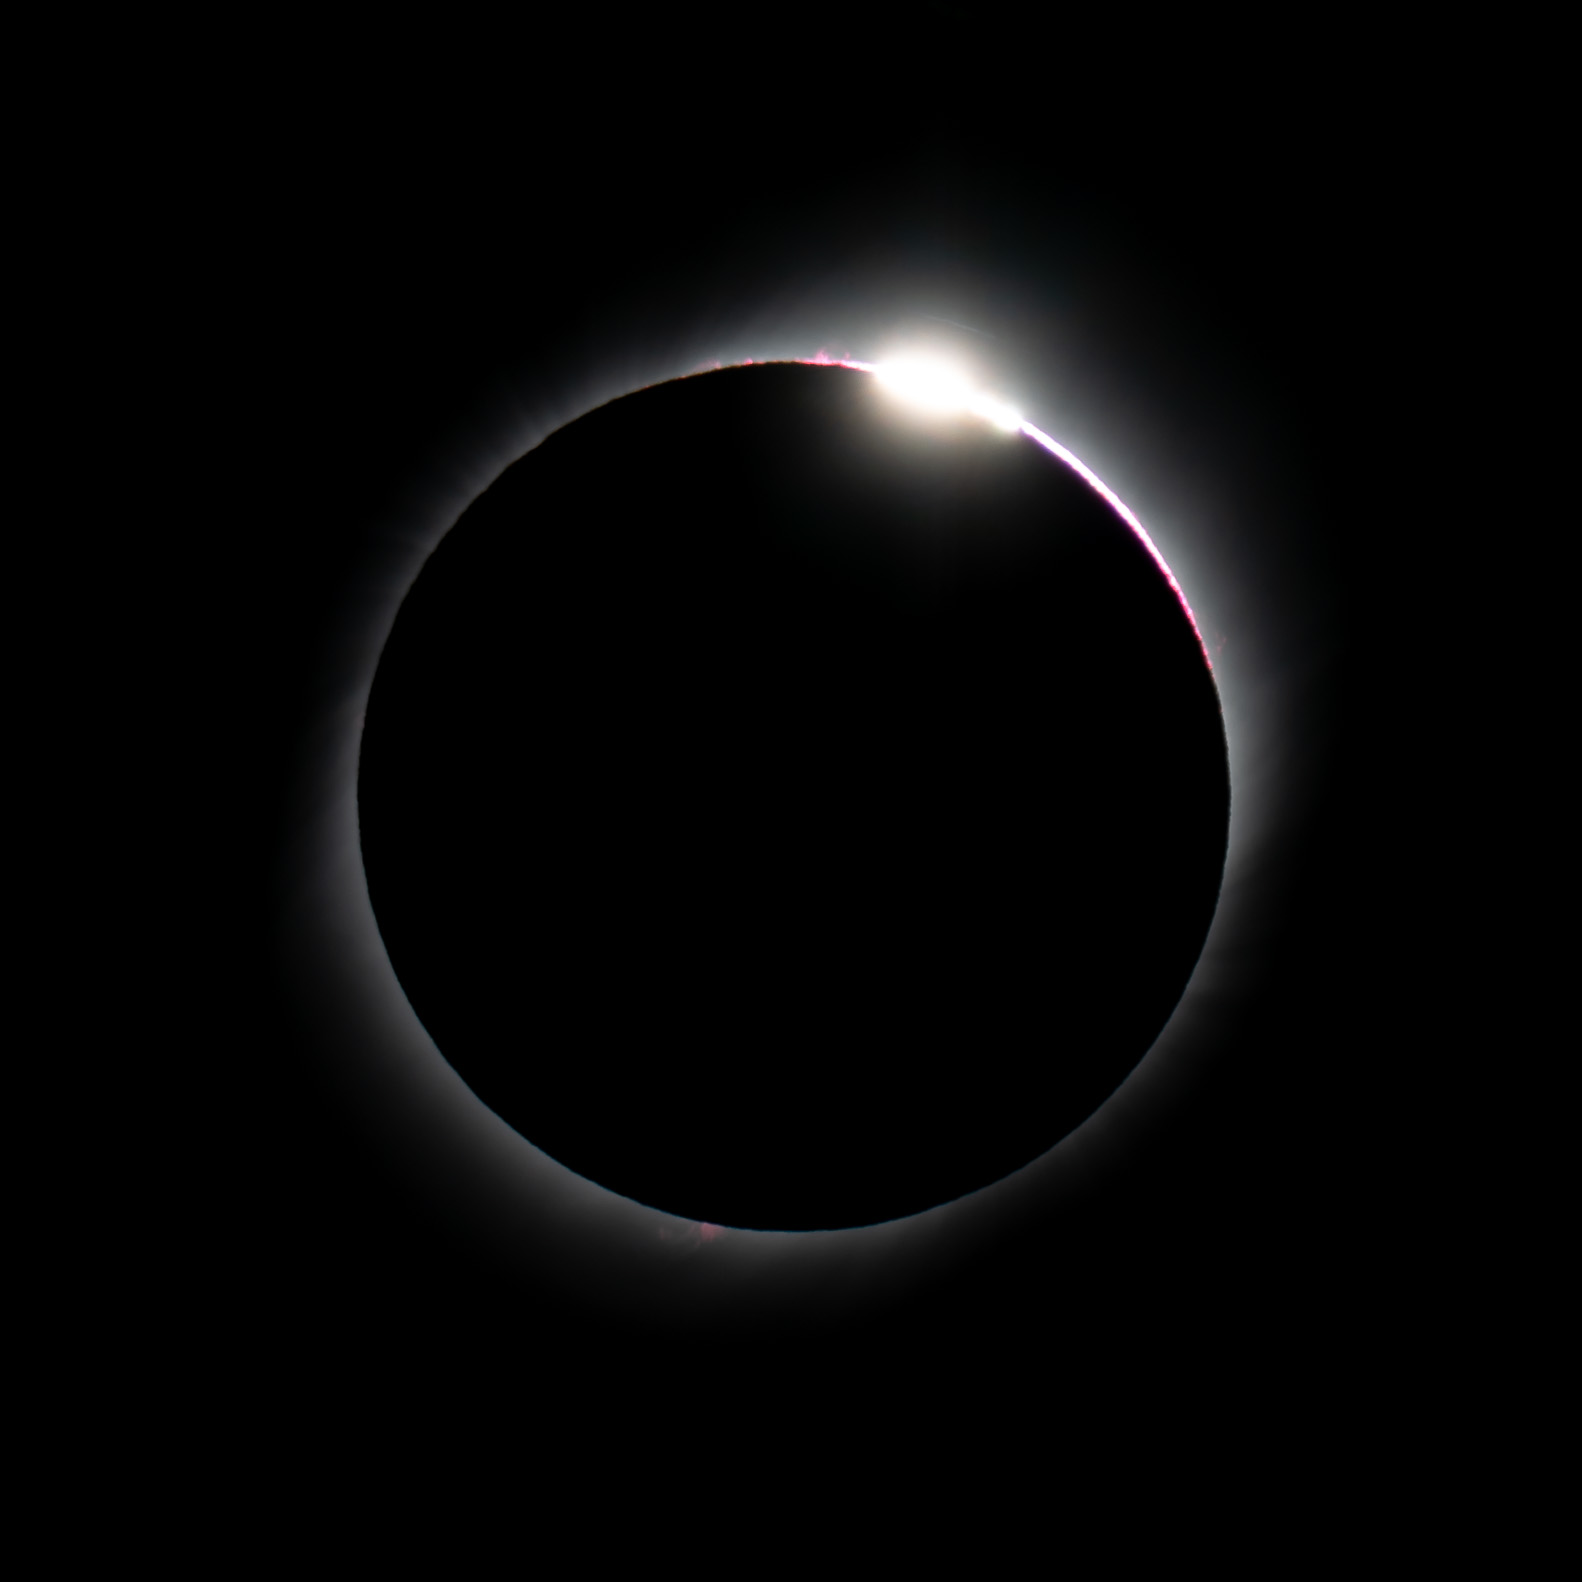 Diamond Ring effect - f/11 | ISO100 | 1/125 secs